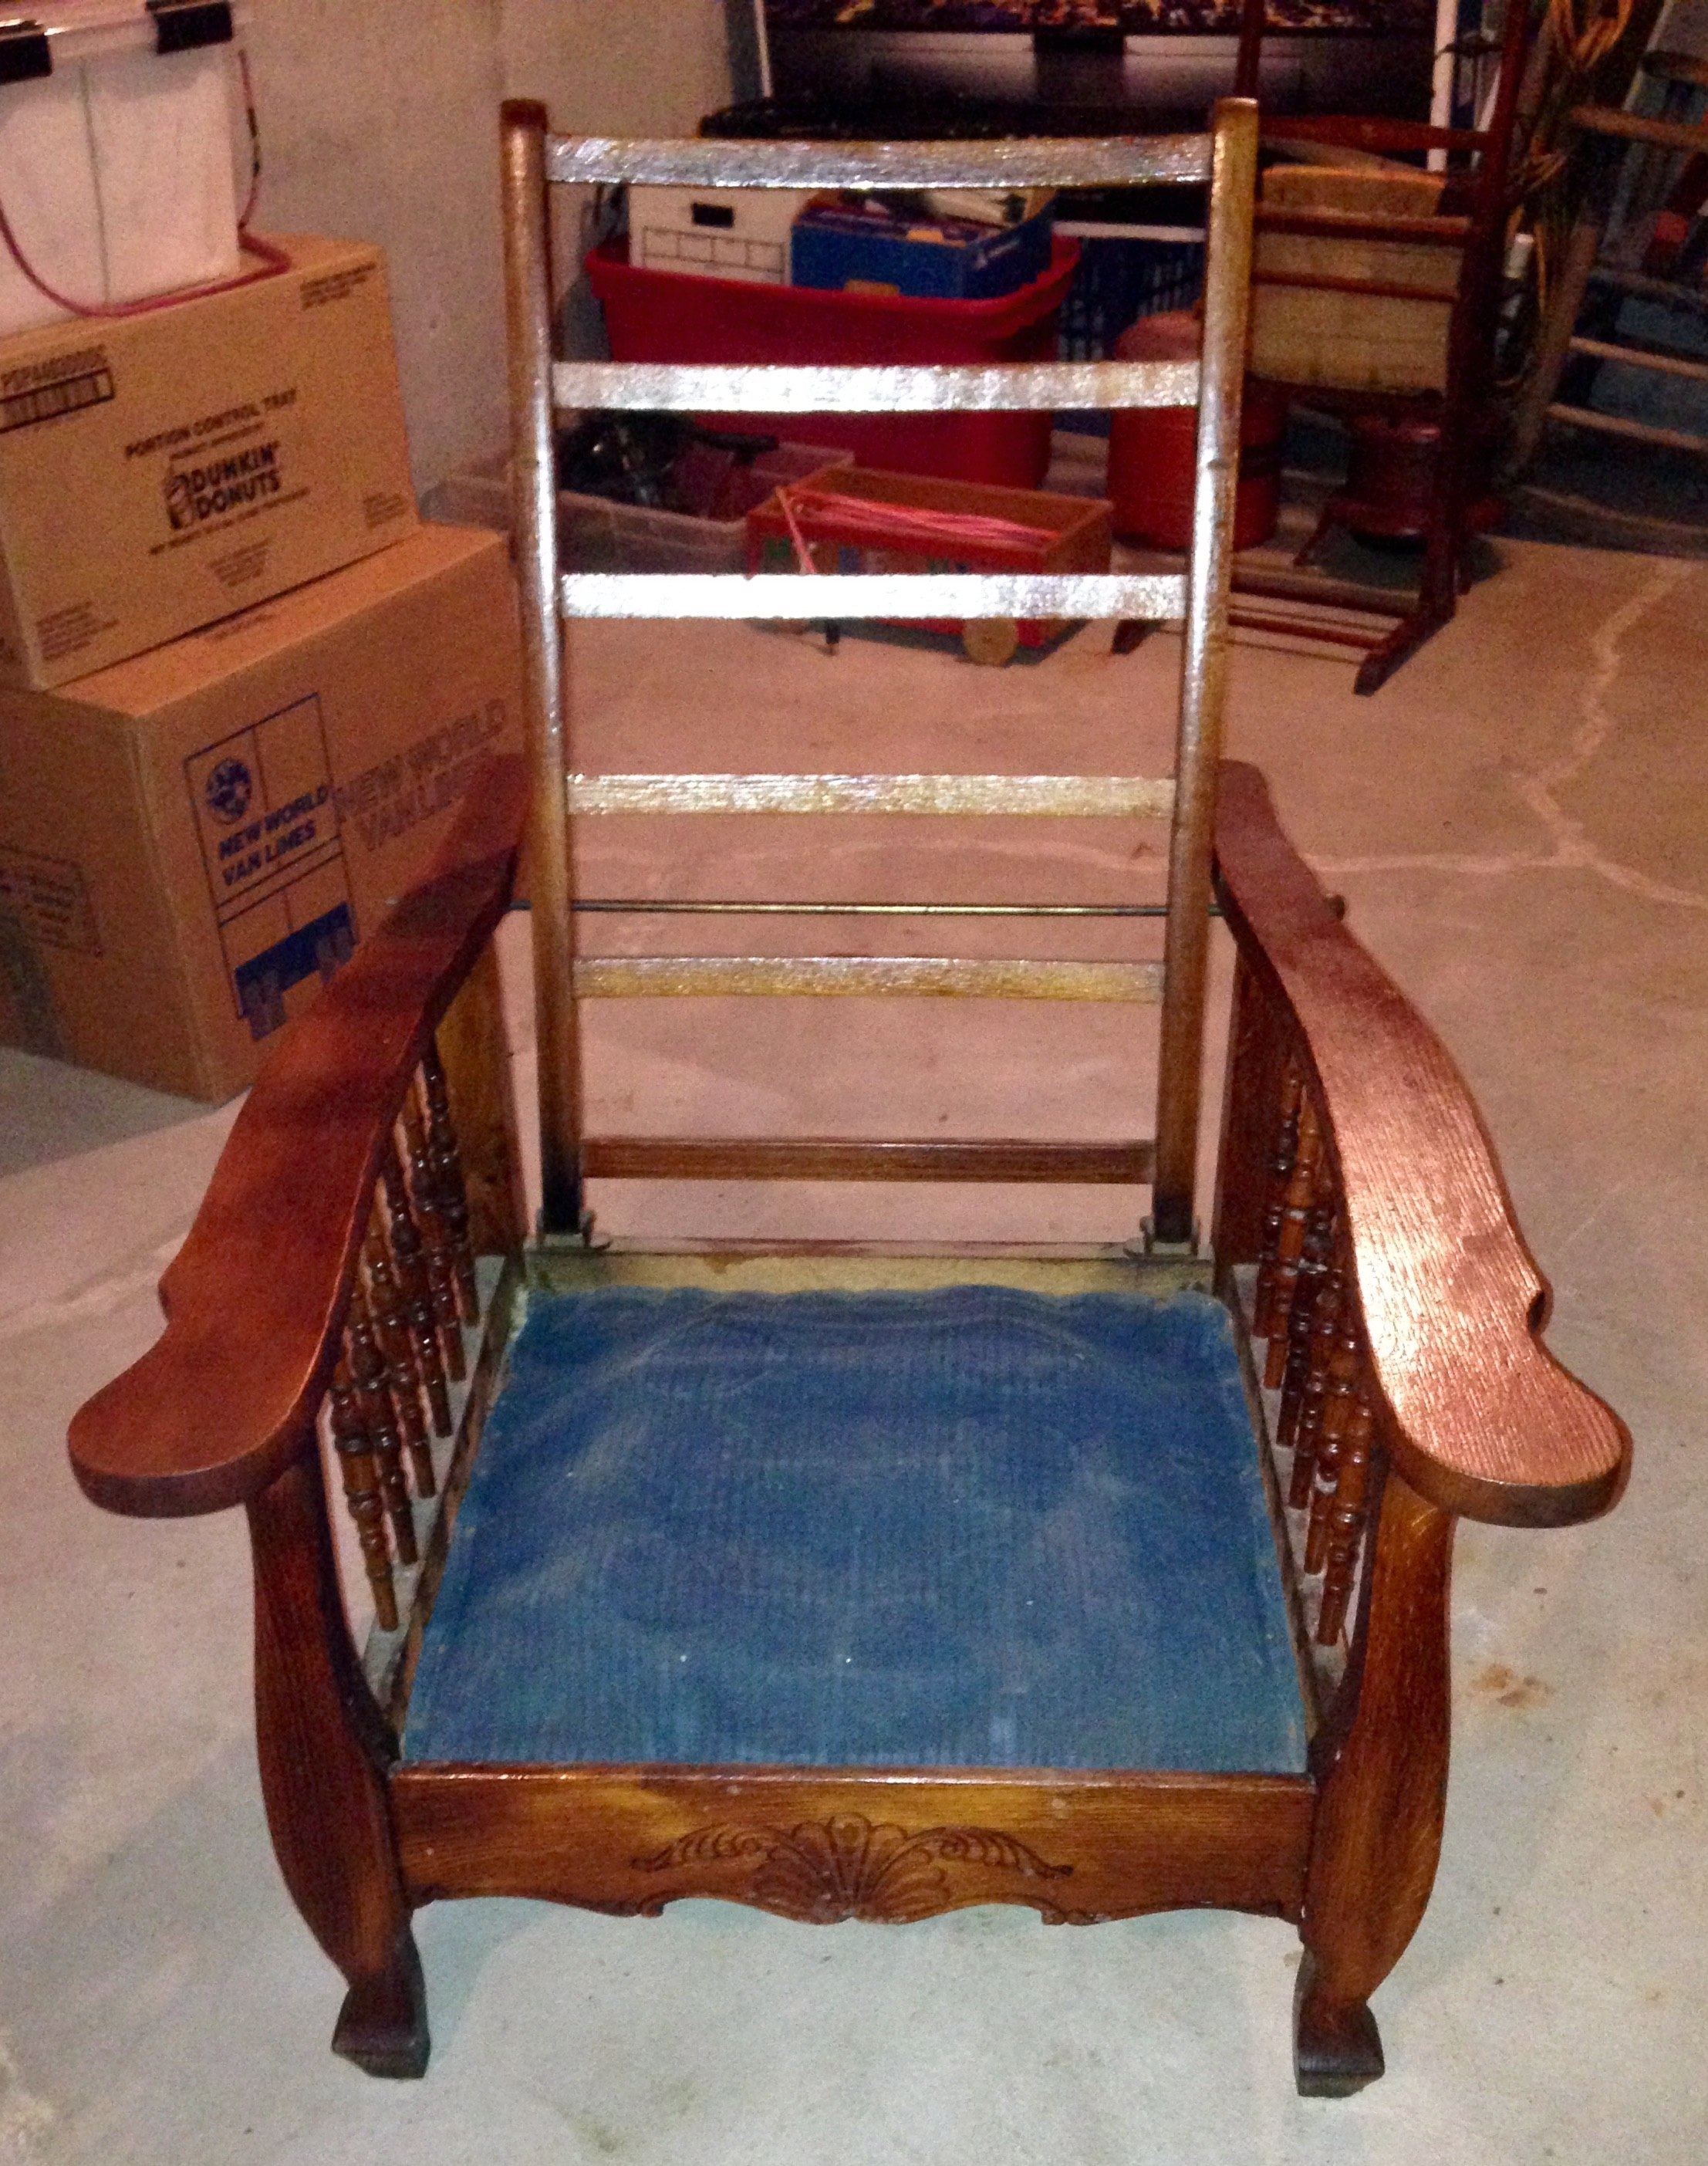 Antique Wood Chair With Adjustable Reclining Position